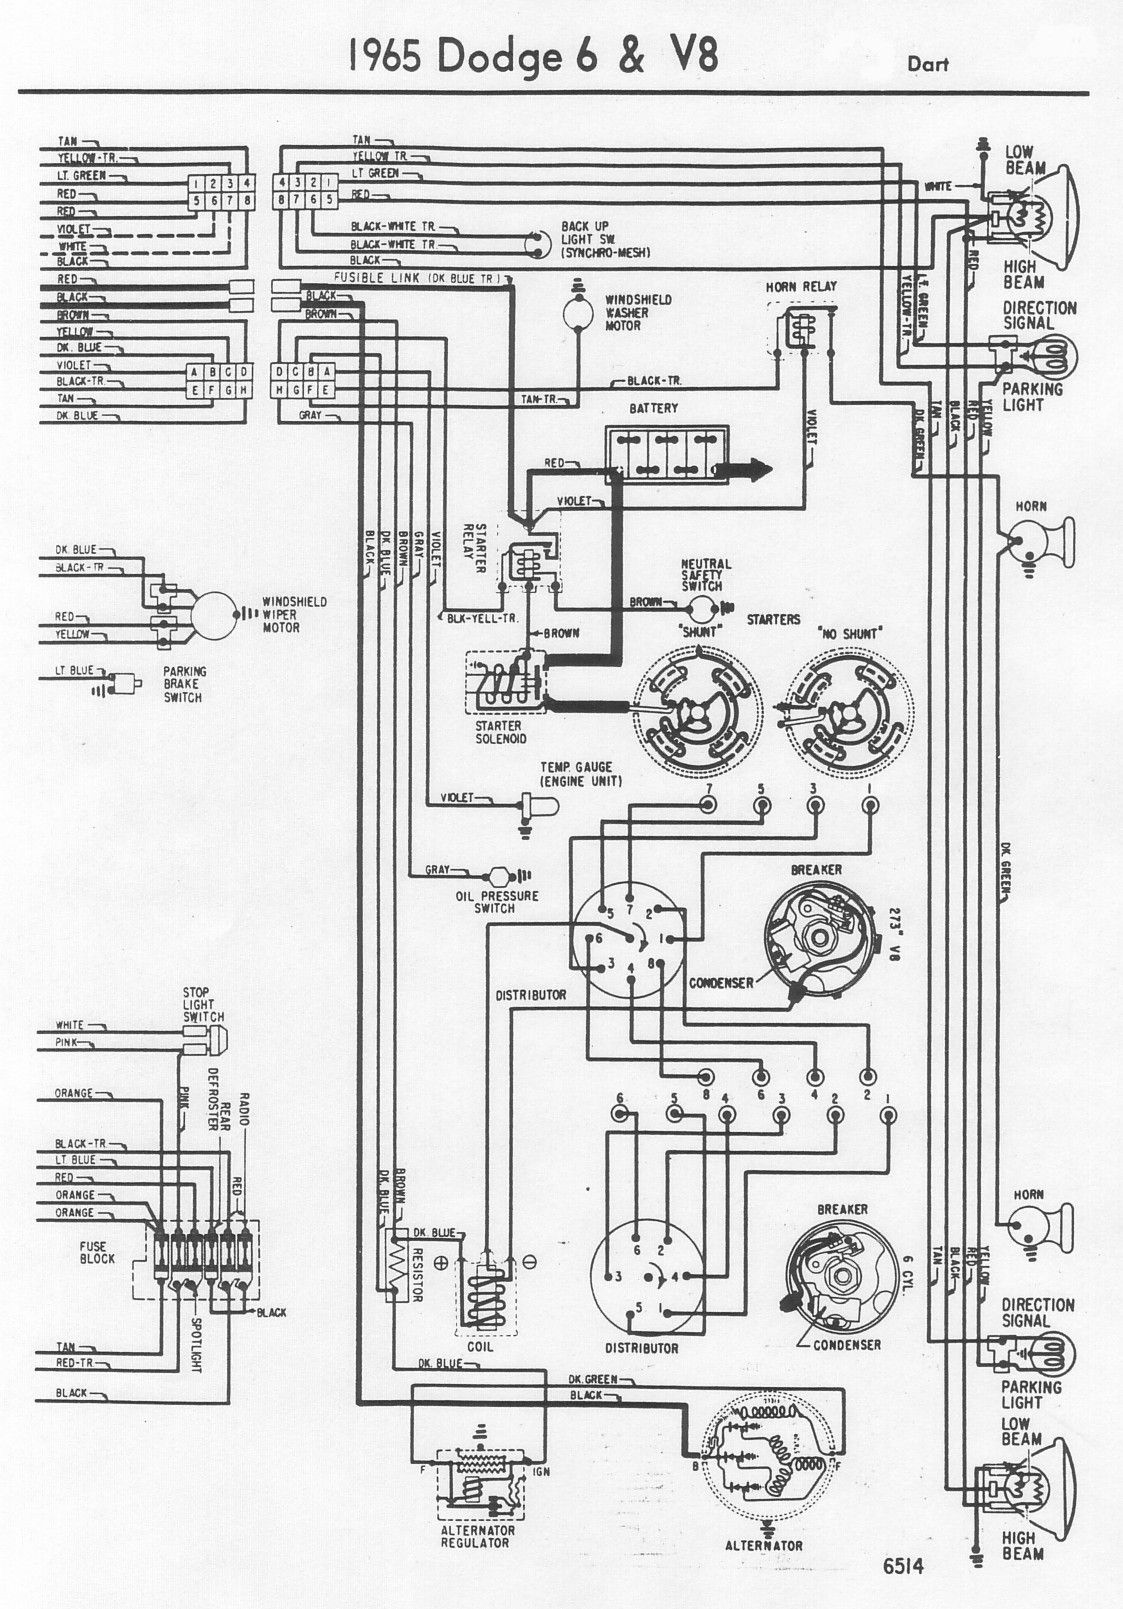 1965 dodge dart wiring diagram